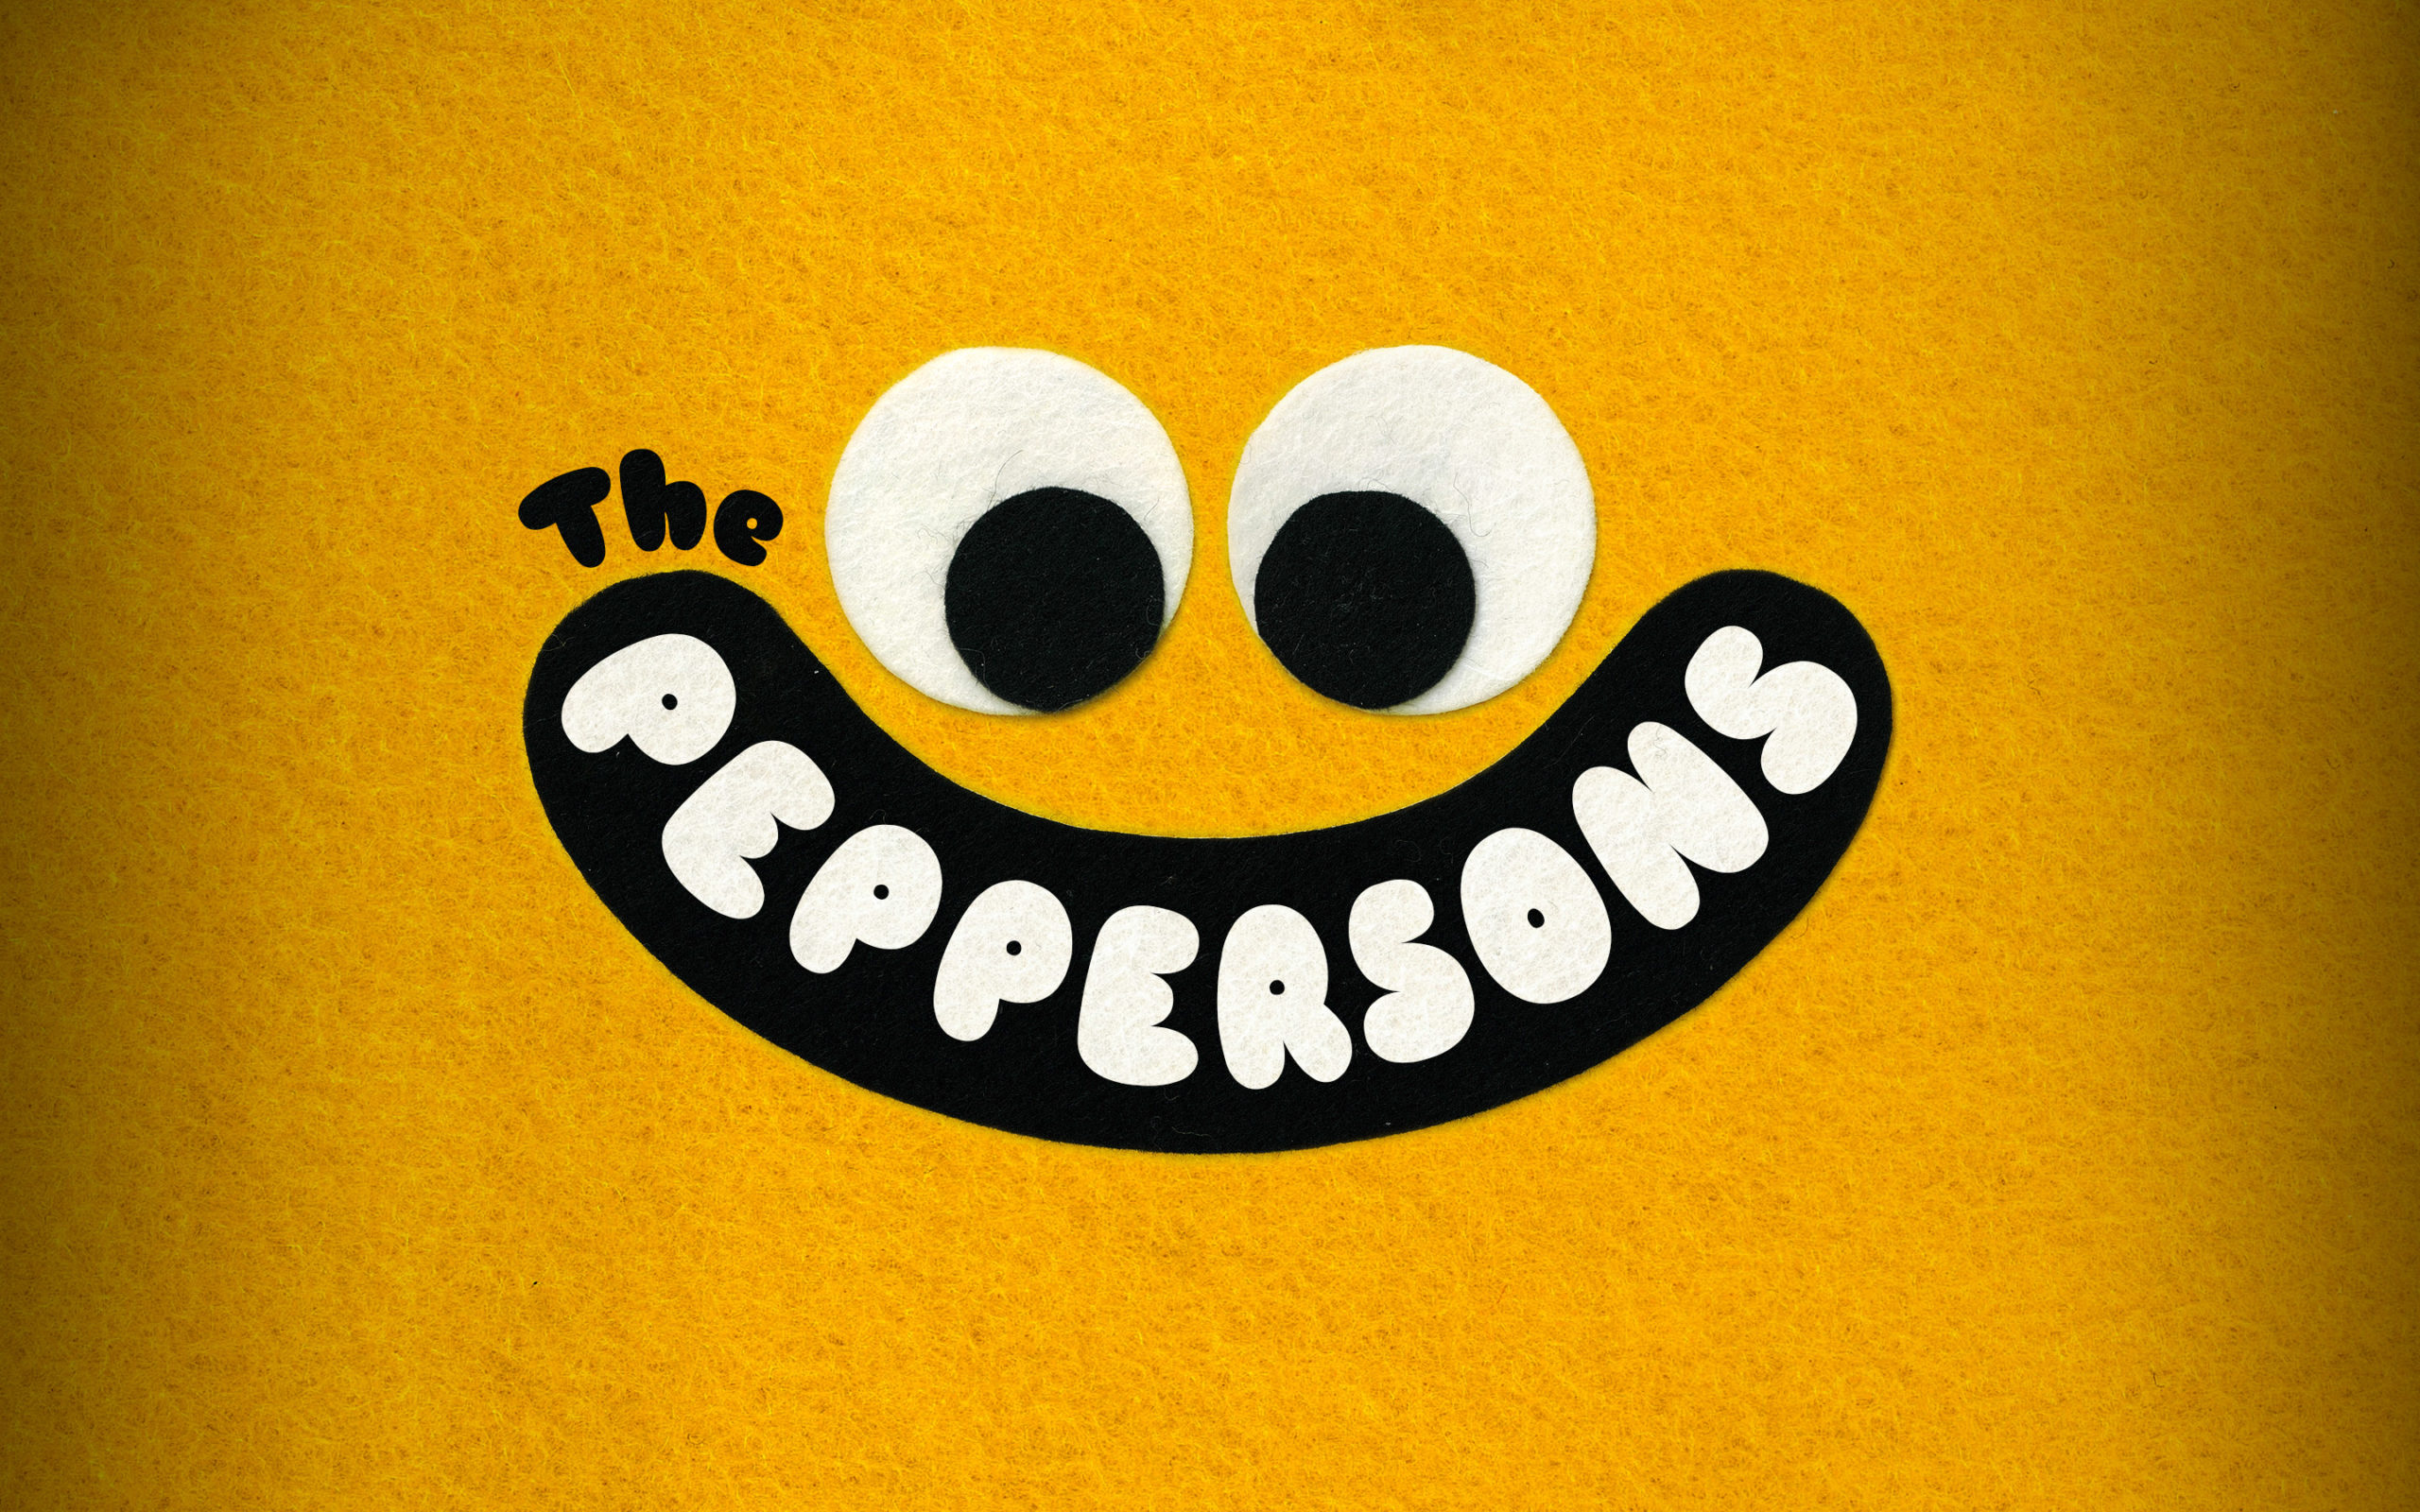 The Peppersons